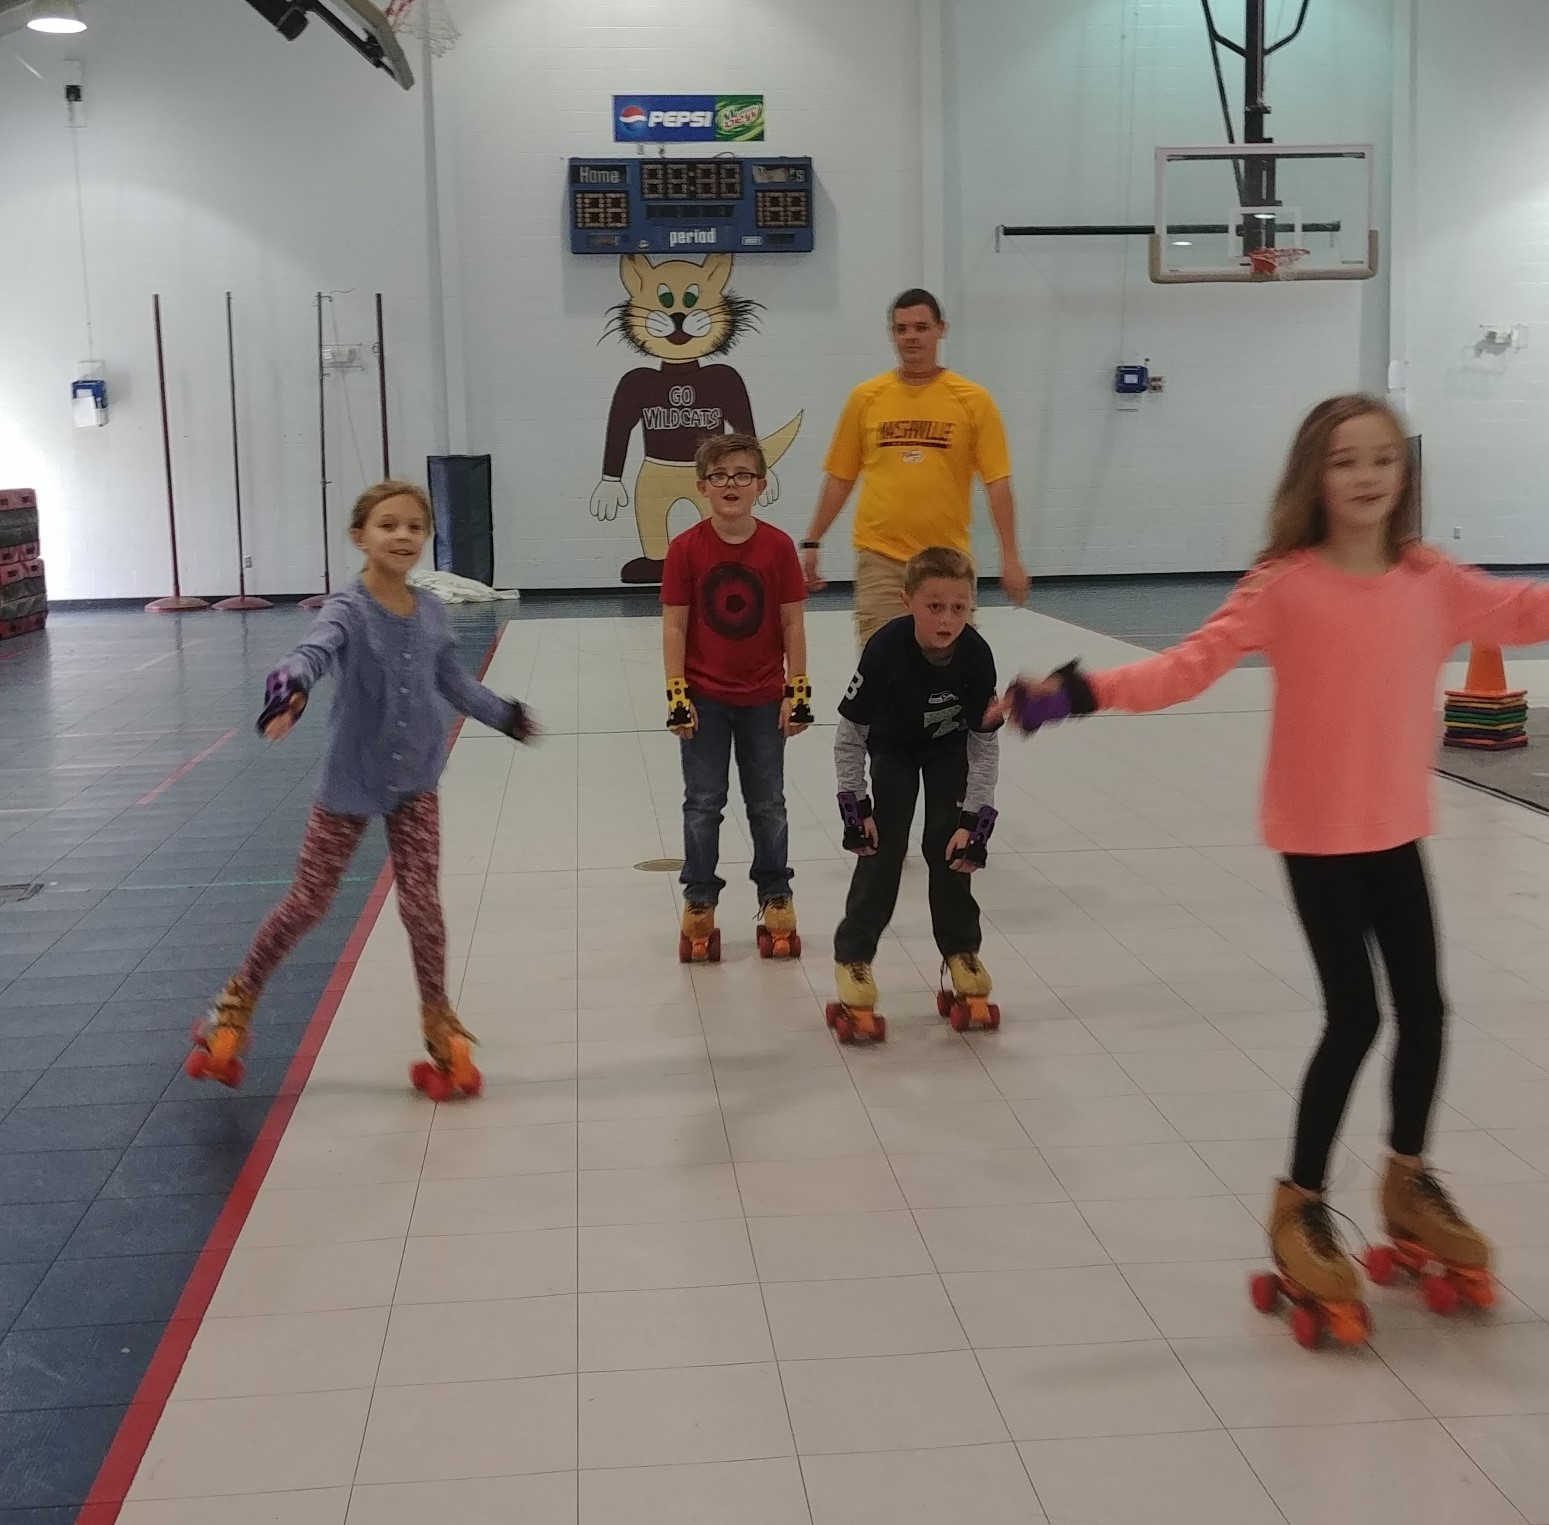 Skating in Gym